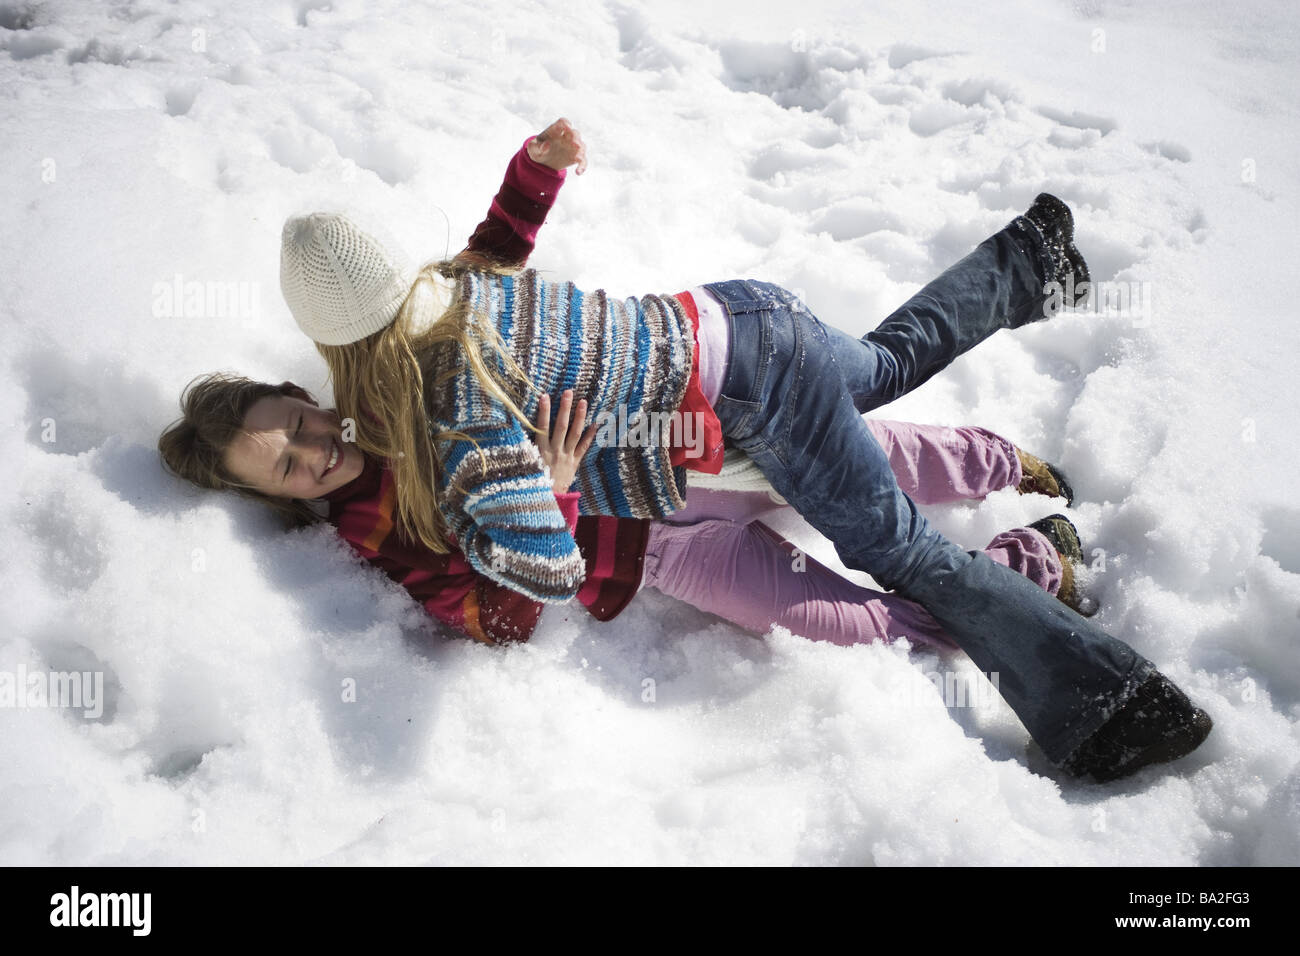 Girls winter-clothing Rangelei omitted rants snow winters leisure time vacation winter-vacation vacation winter - Stock Image